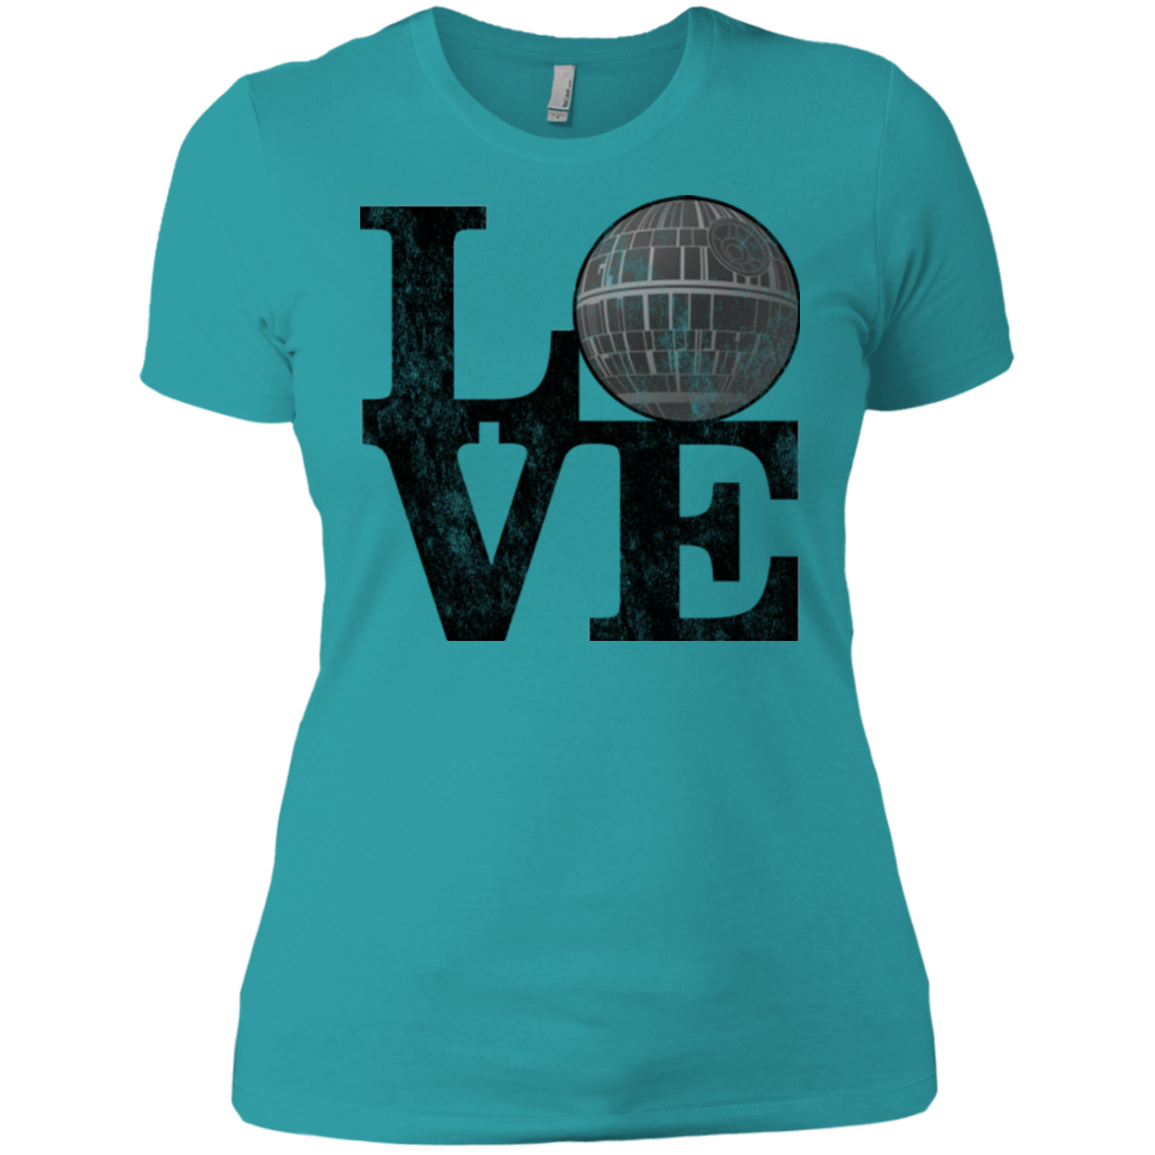 LOVE Deathstar 1 Women's Premium T-Shirt